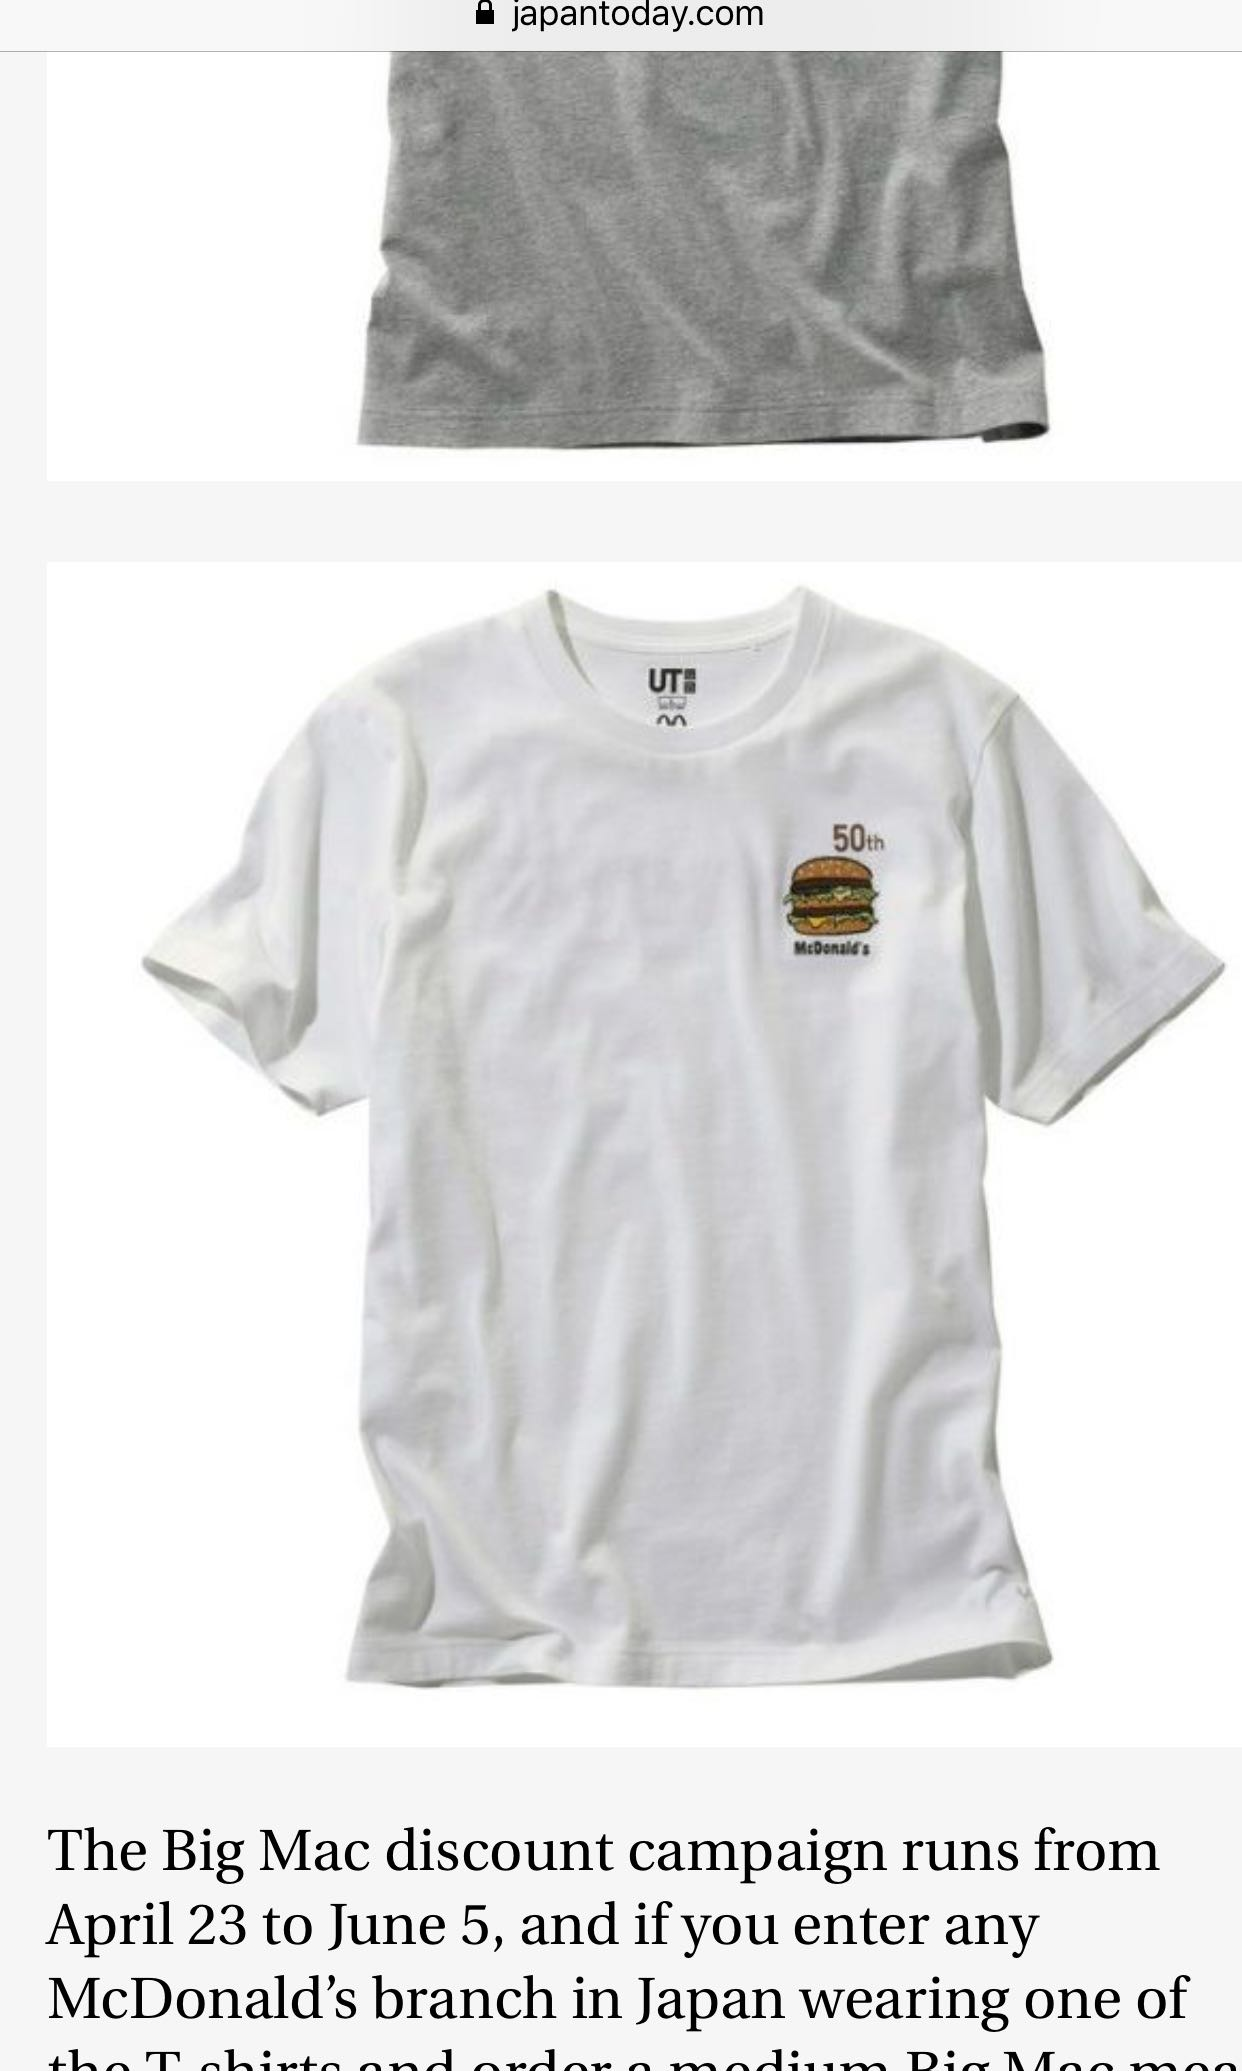 c2fe95d5af Japan uniqlo limited edition colab with MCD tee, Women's Fashion ...